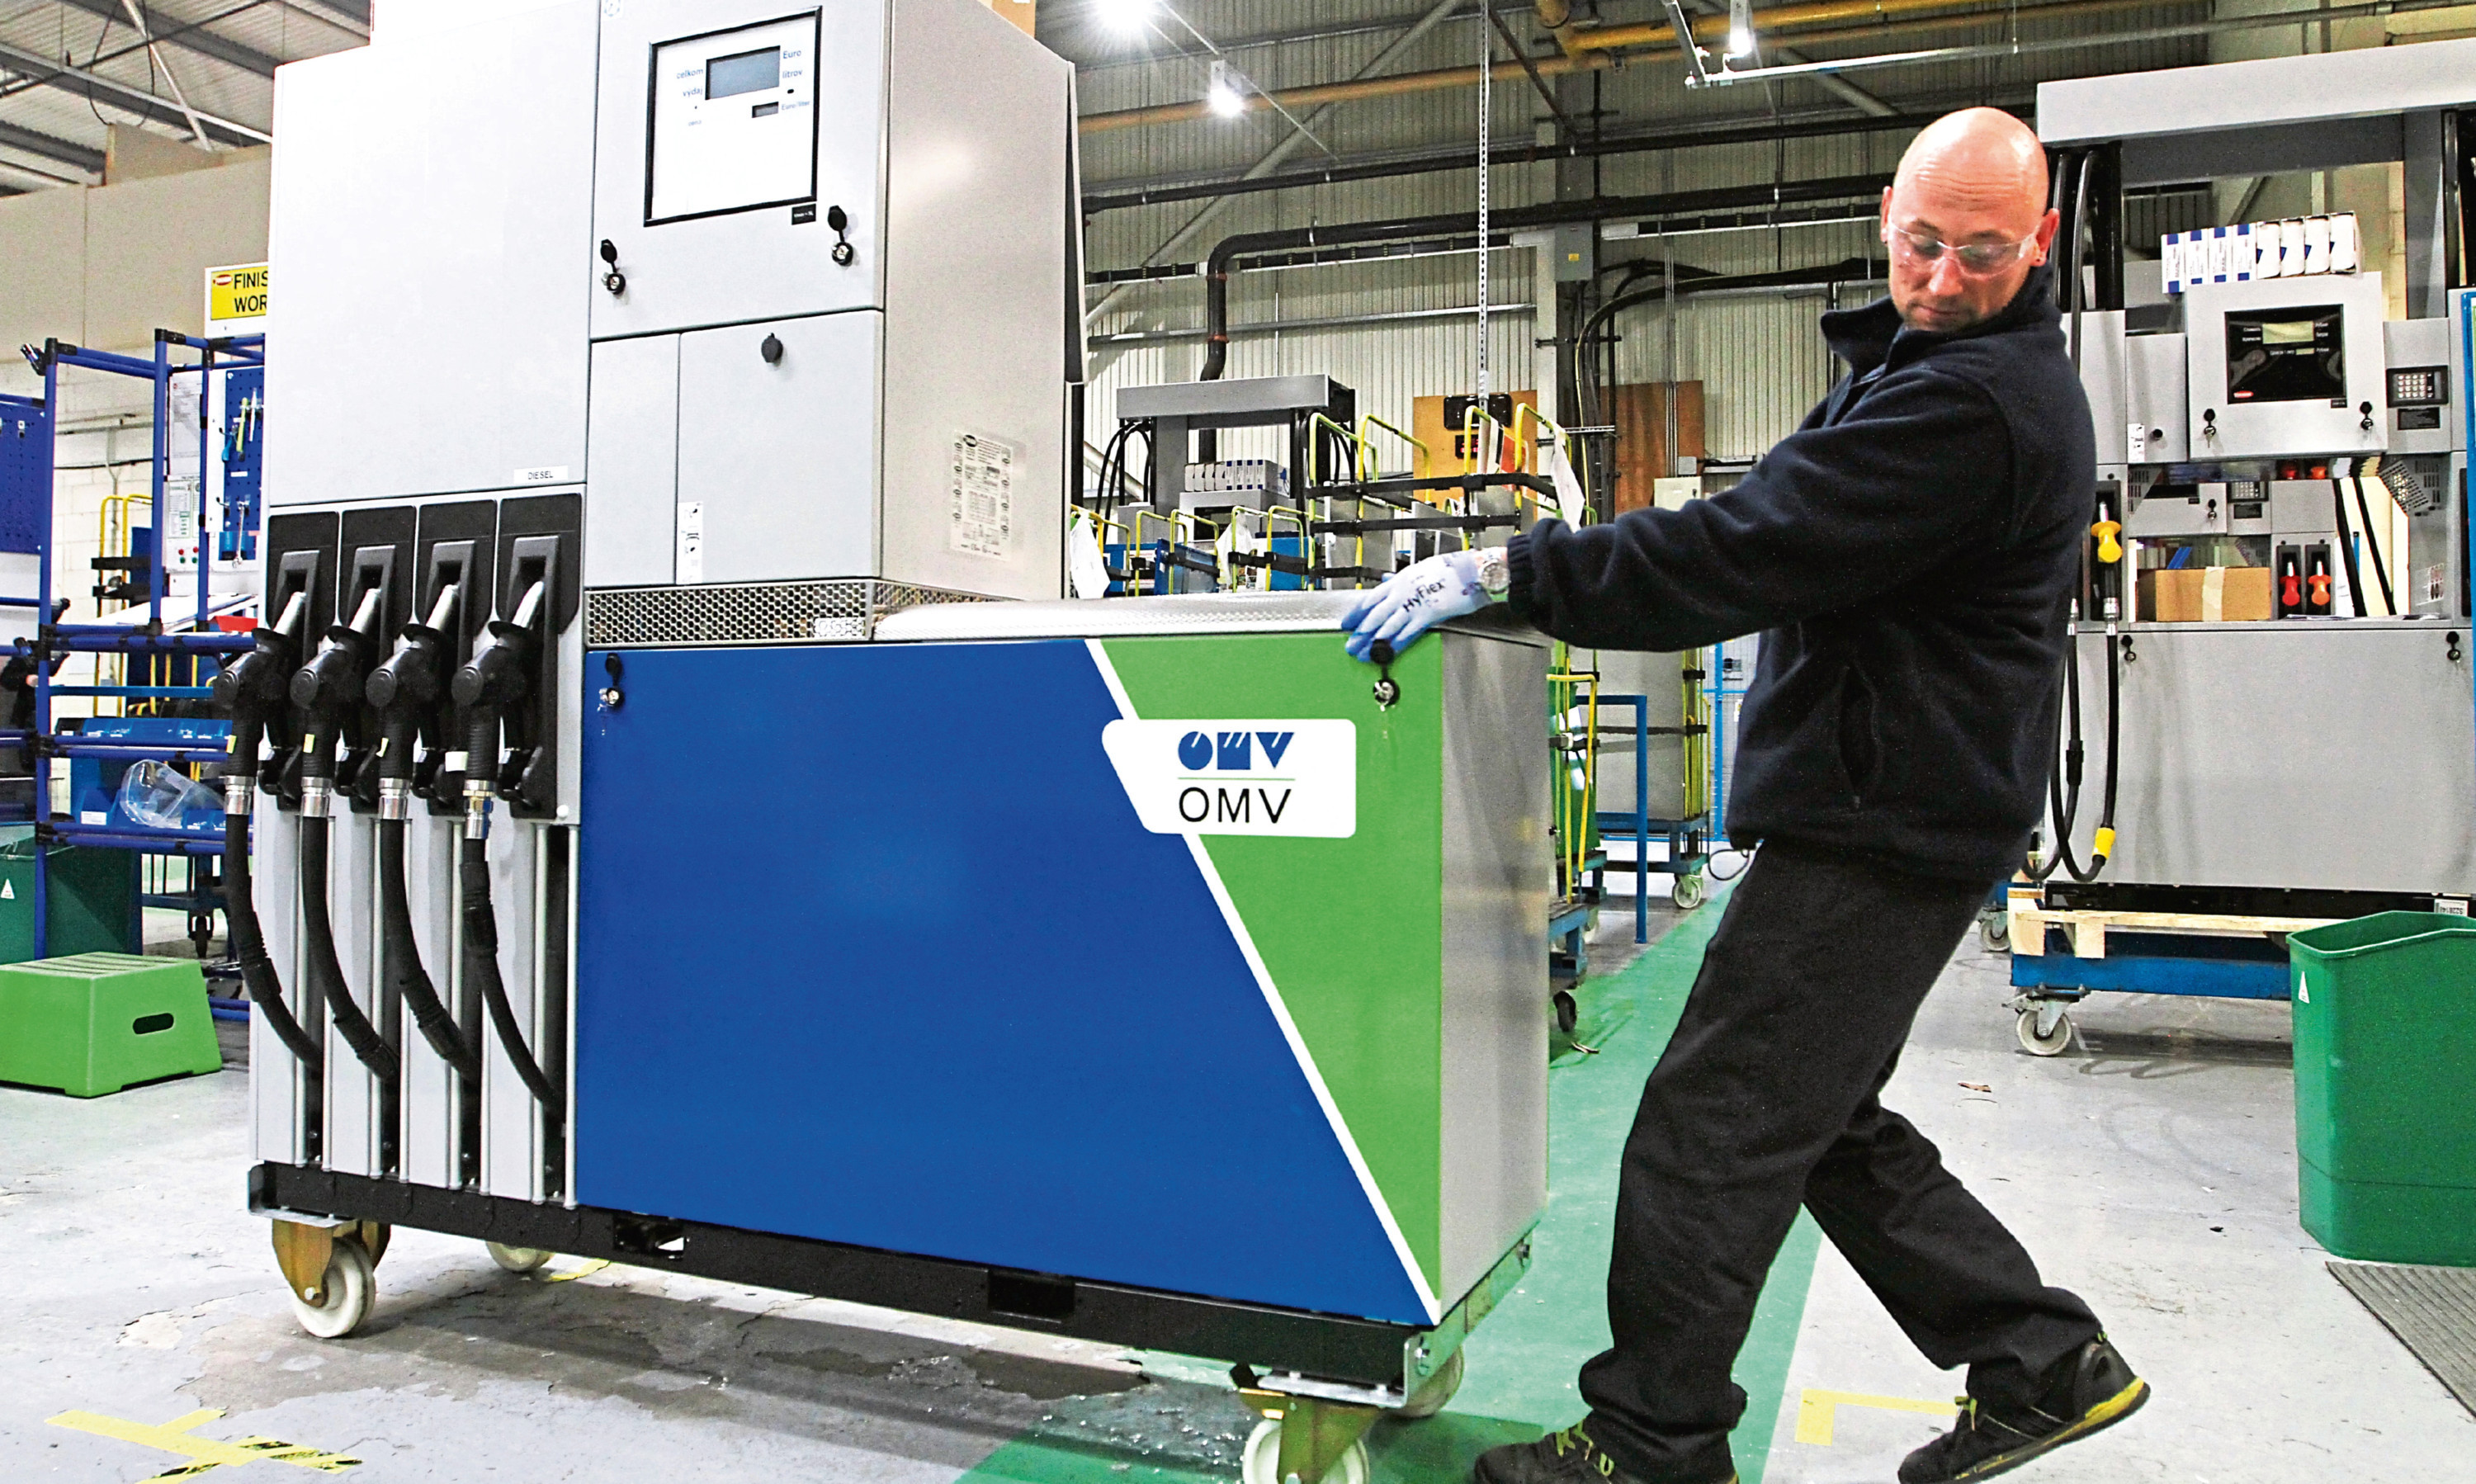 Lucas Krefe, an auditor in the finishing department wheels a Quantium 510 fuel dispenser across the floor of the Dundee factory